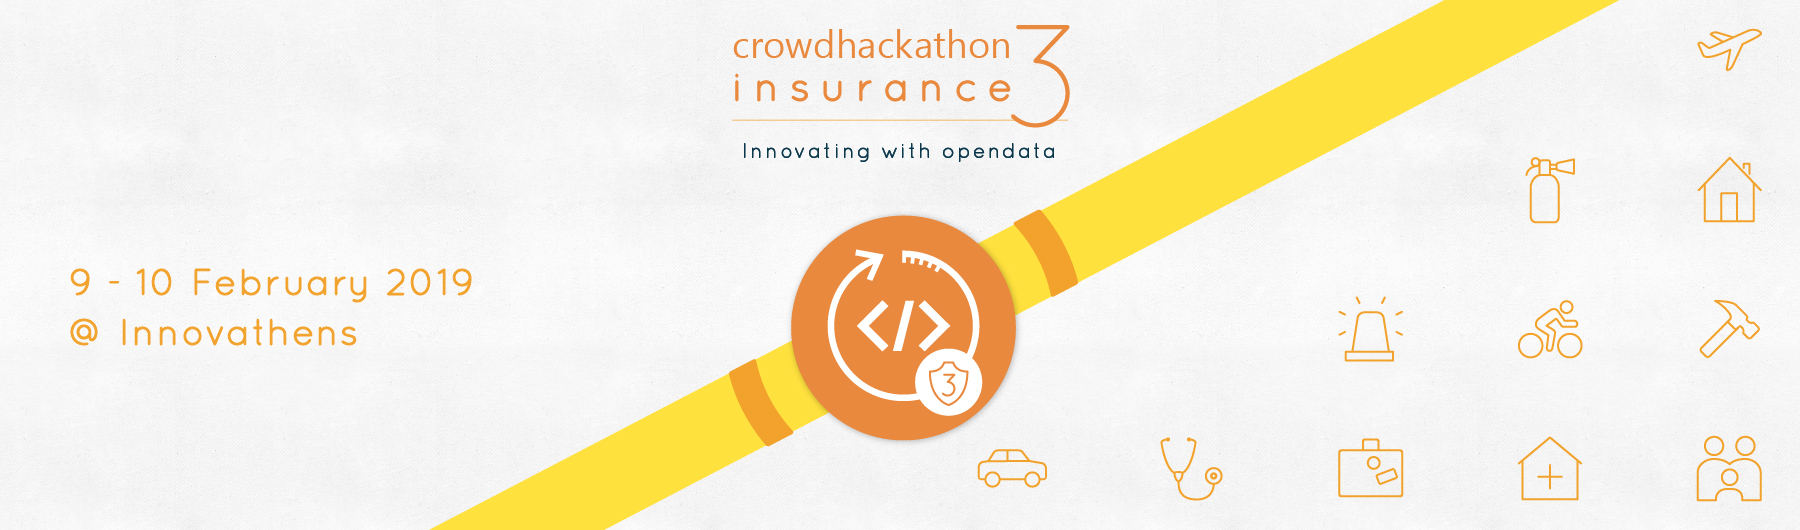 Crowdhackathon Insurance 3